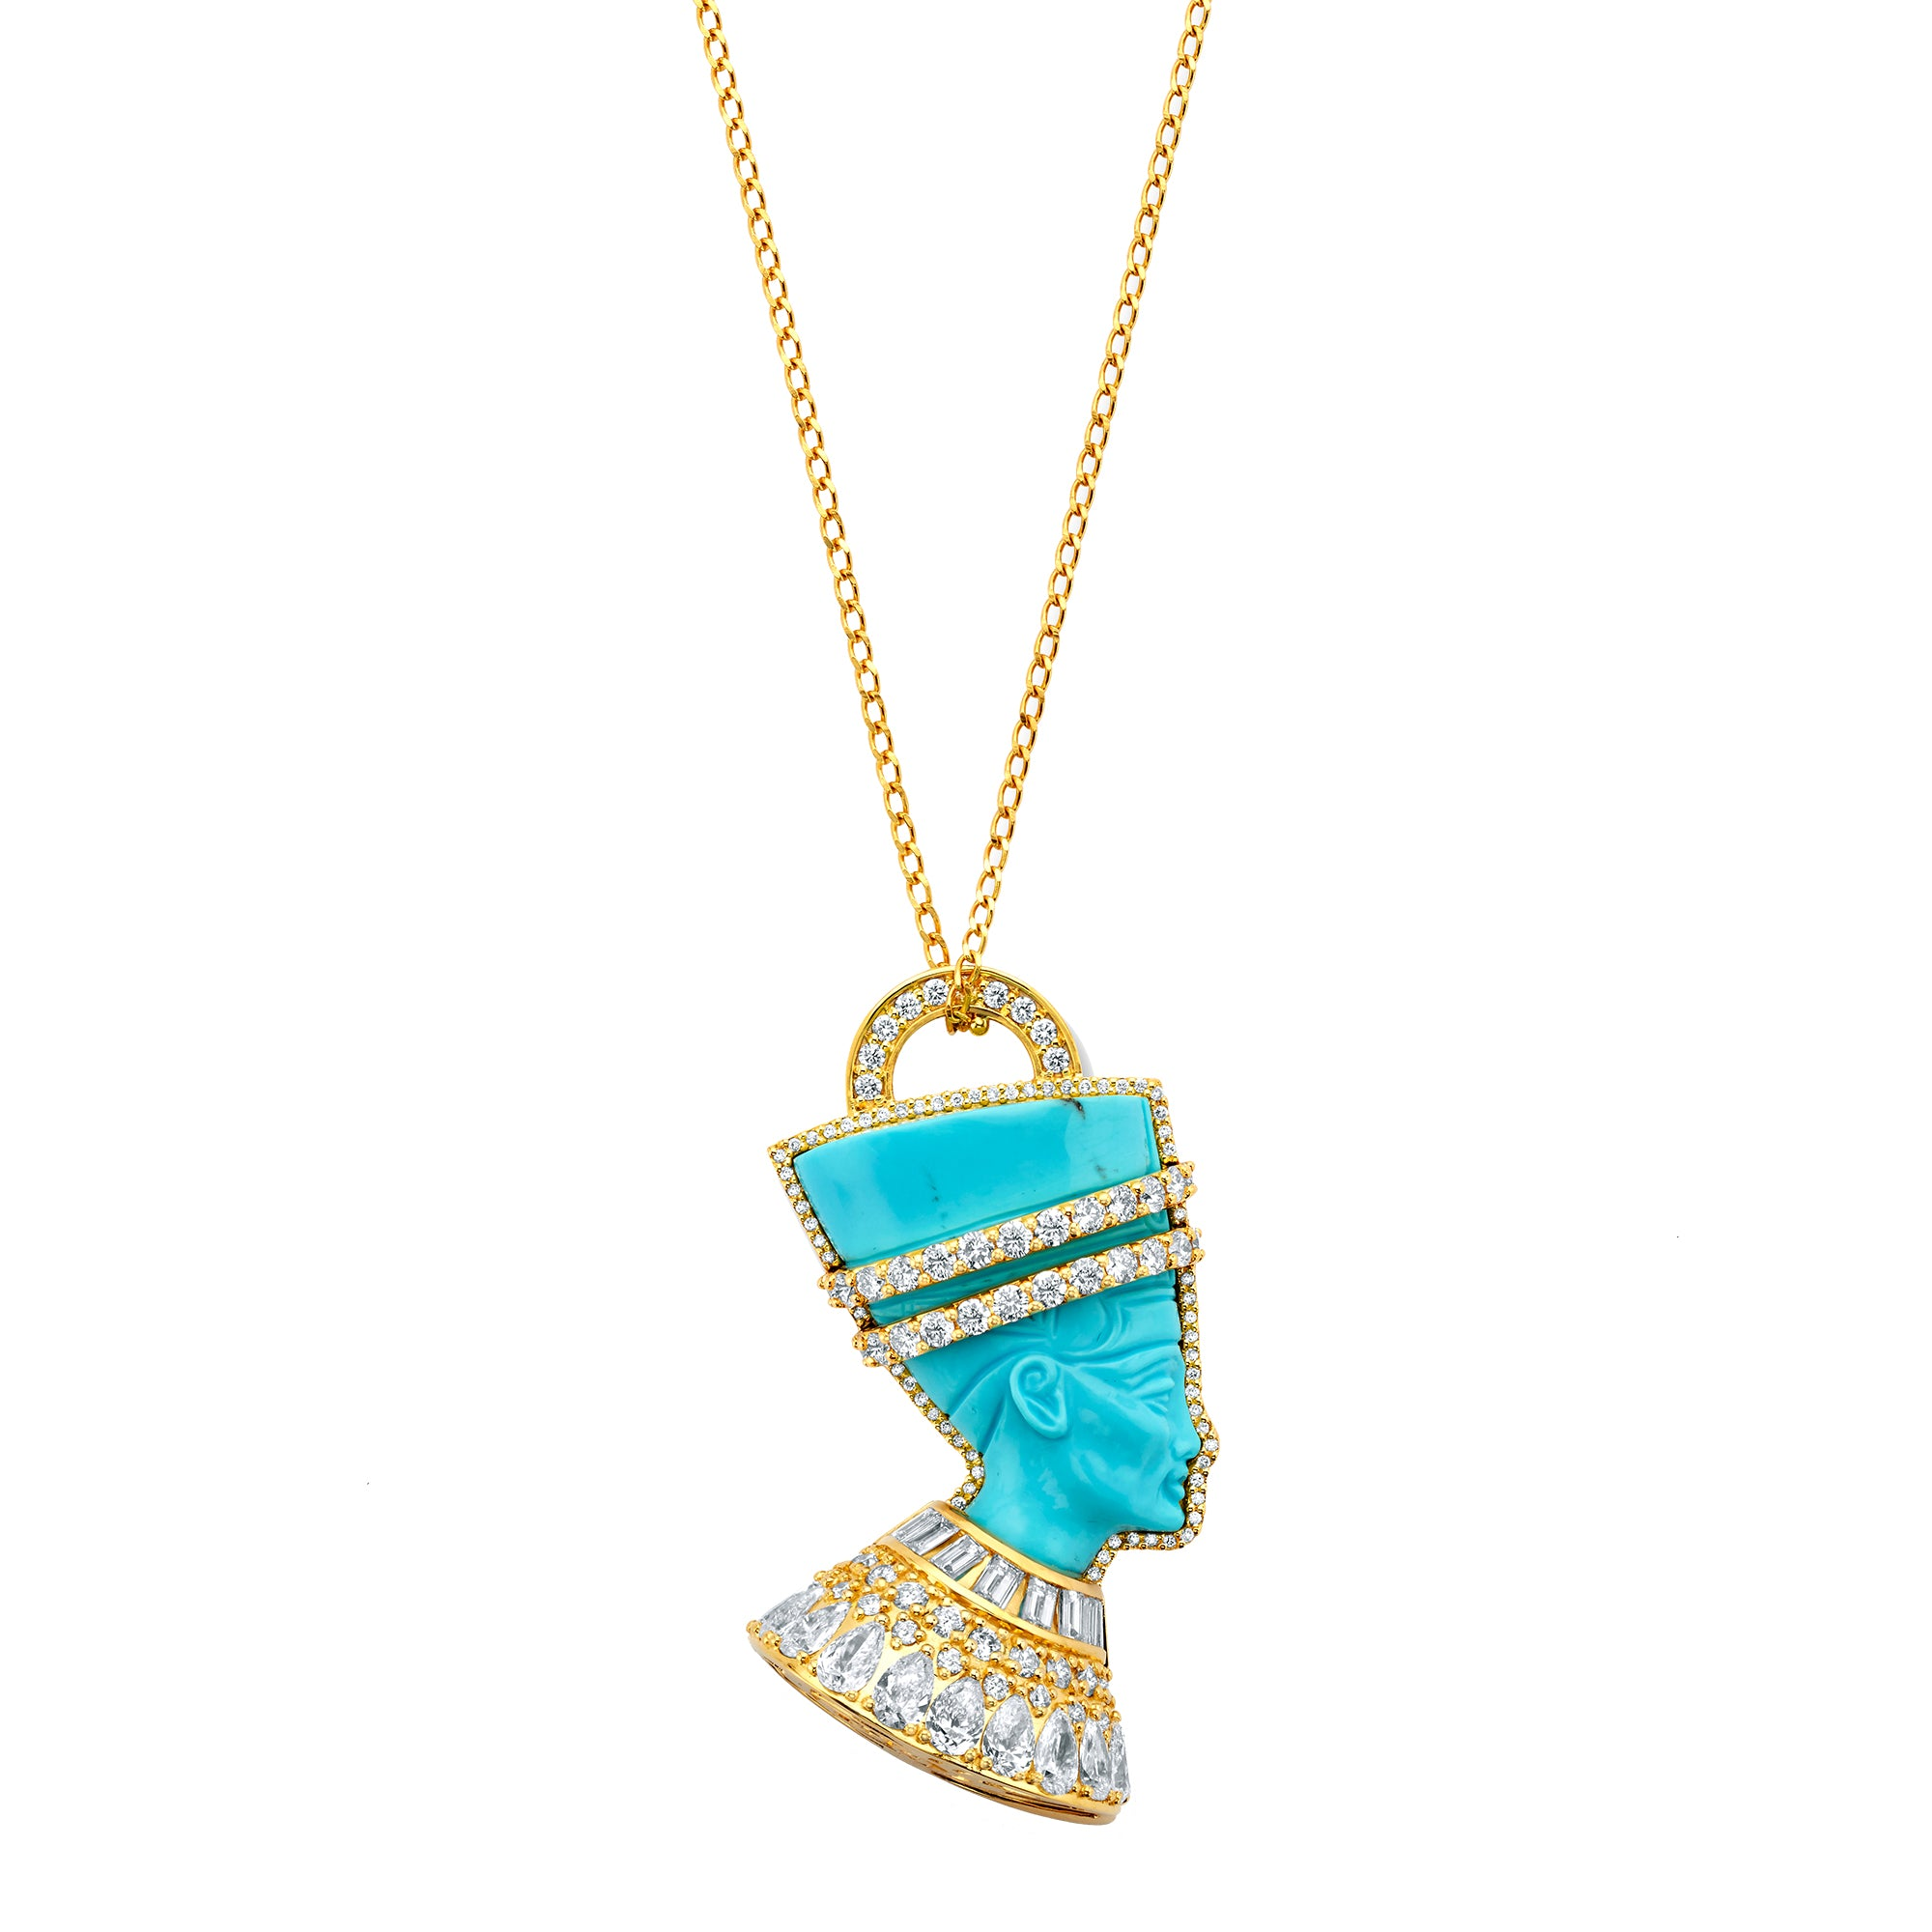 Gold Wite Diamond Turquoise Sleeping Beauty Nefertiti Pendant by Buddha Mama for Broken English Jewelry